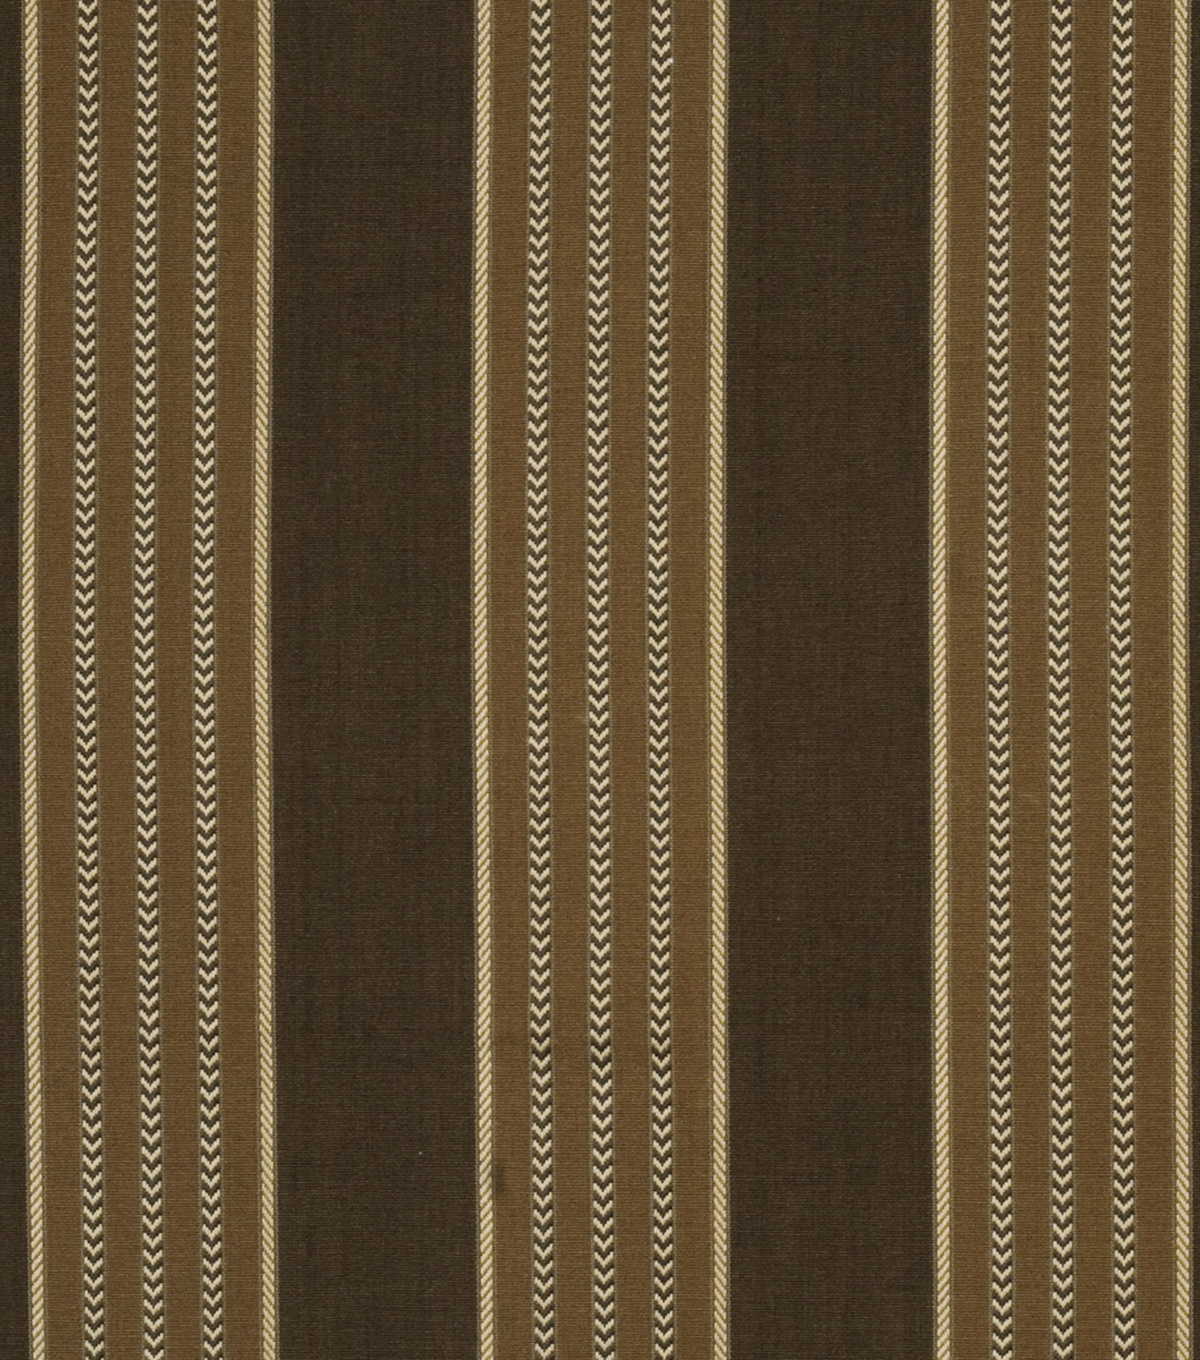 Home Decor 8\u0022x8\u0022 Fabric Swatch-Jaclyn Smith Odessa-Molasses